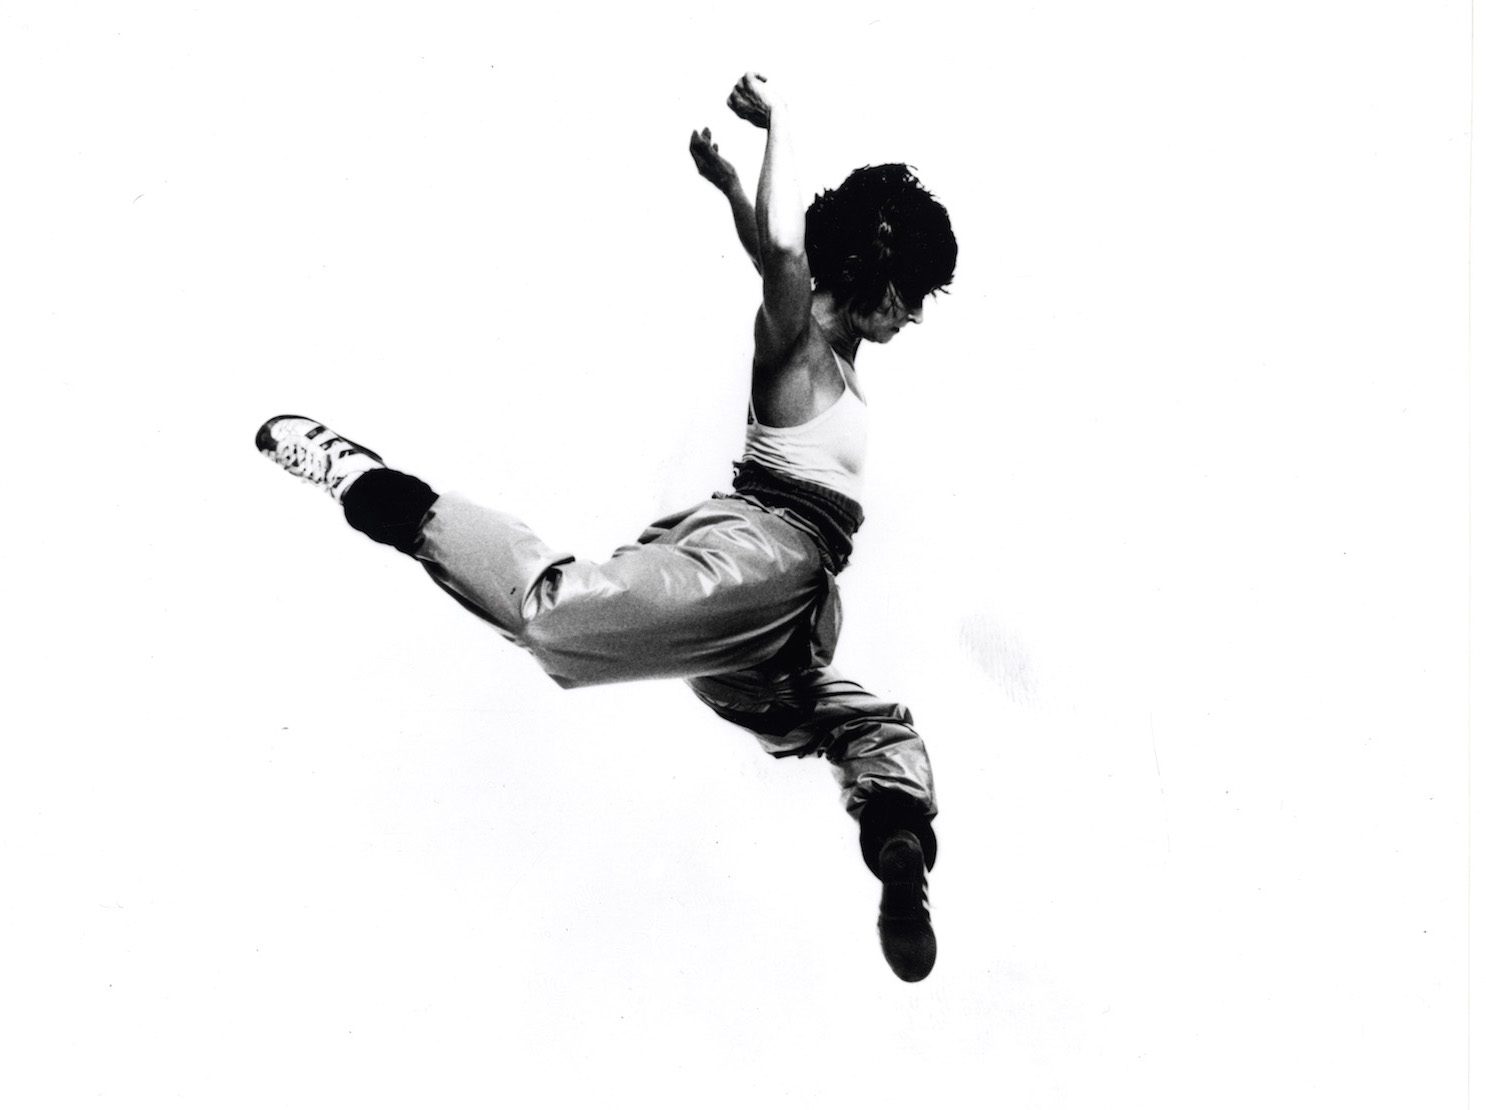 Twyla Tharp Dance returns to The Joyce Theater after 12 years